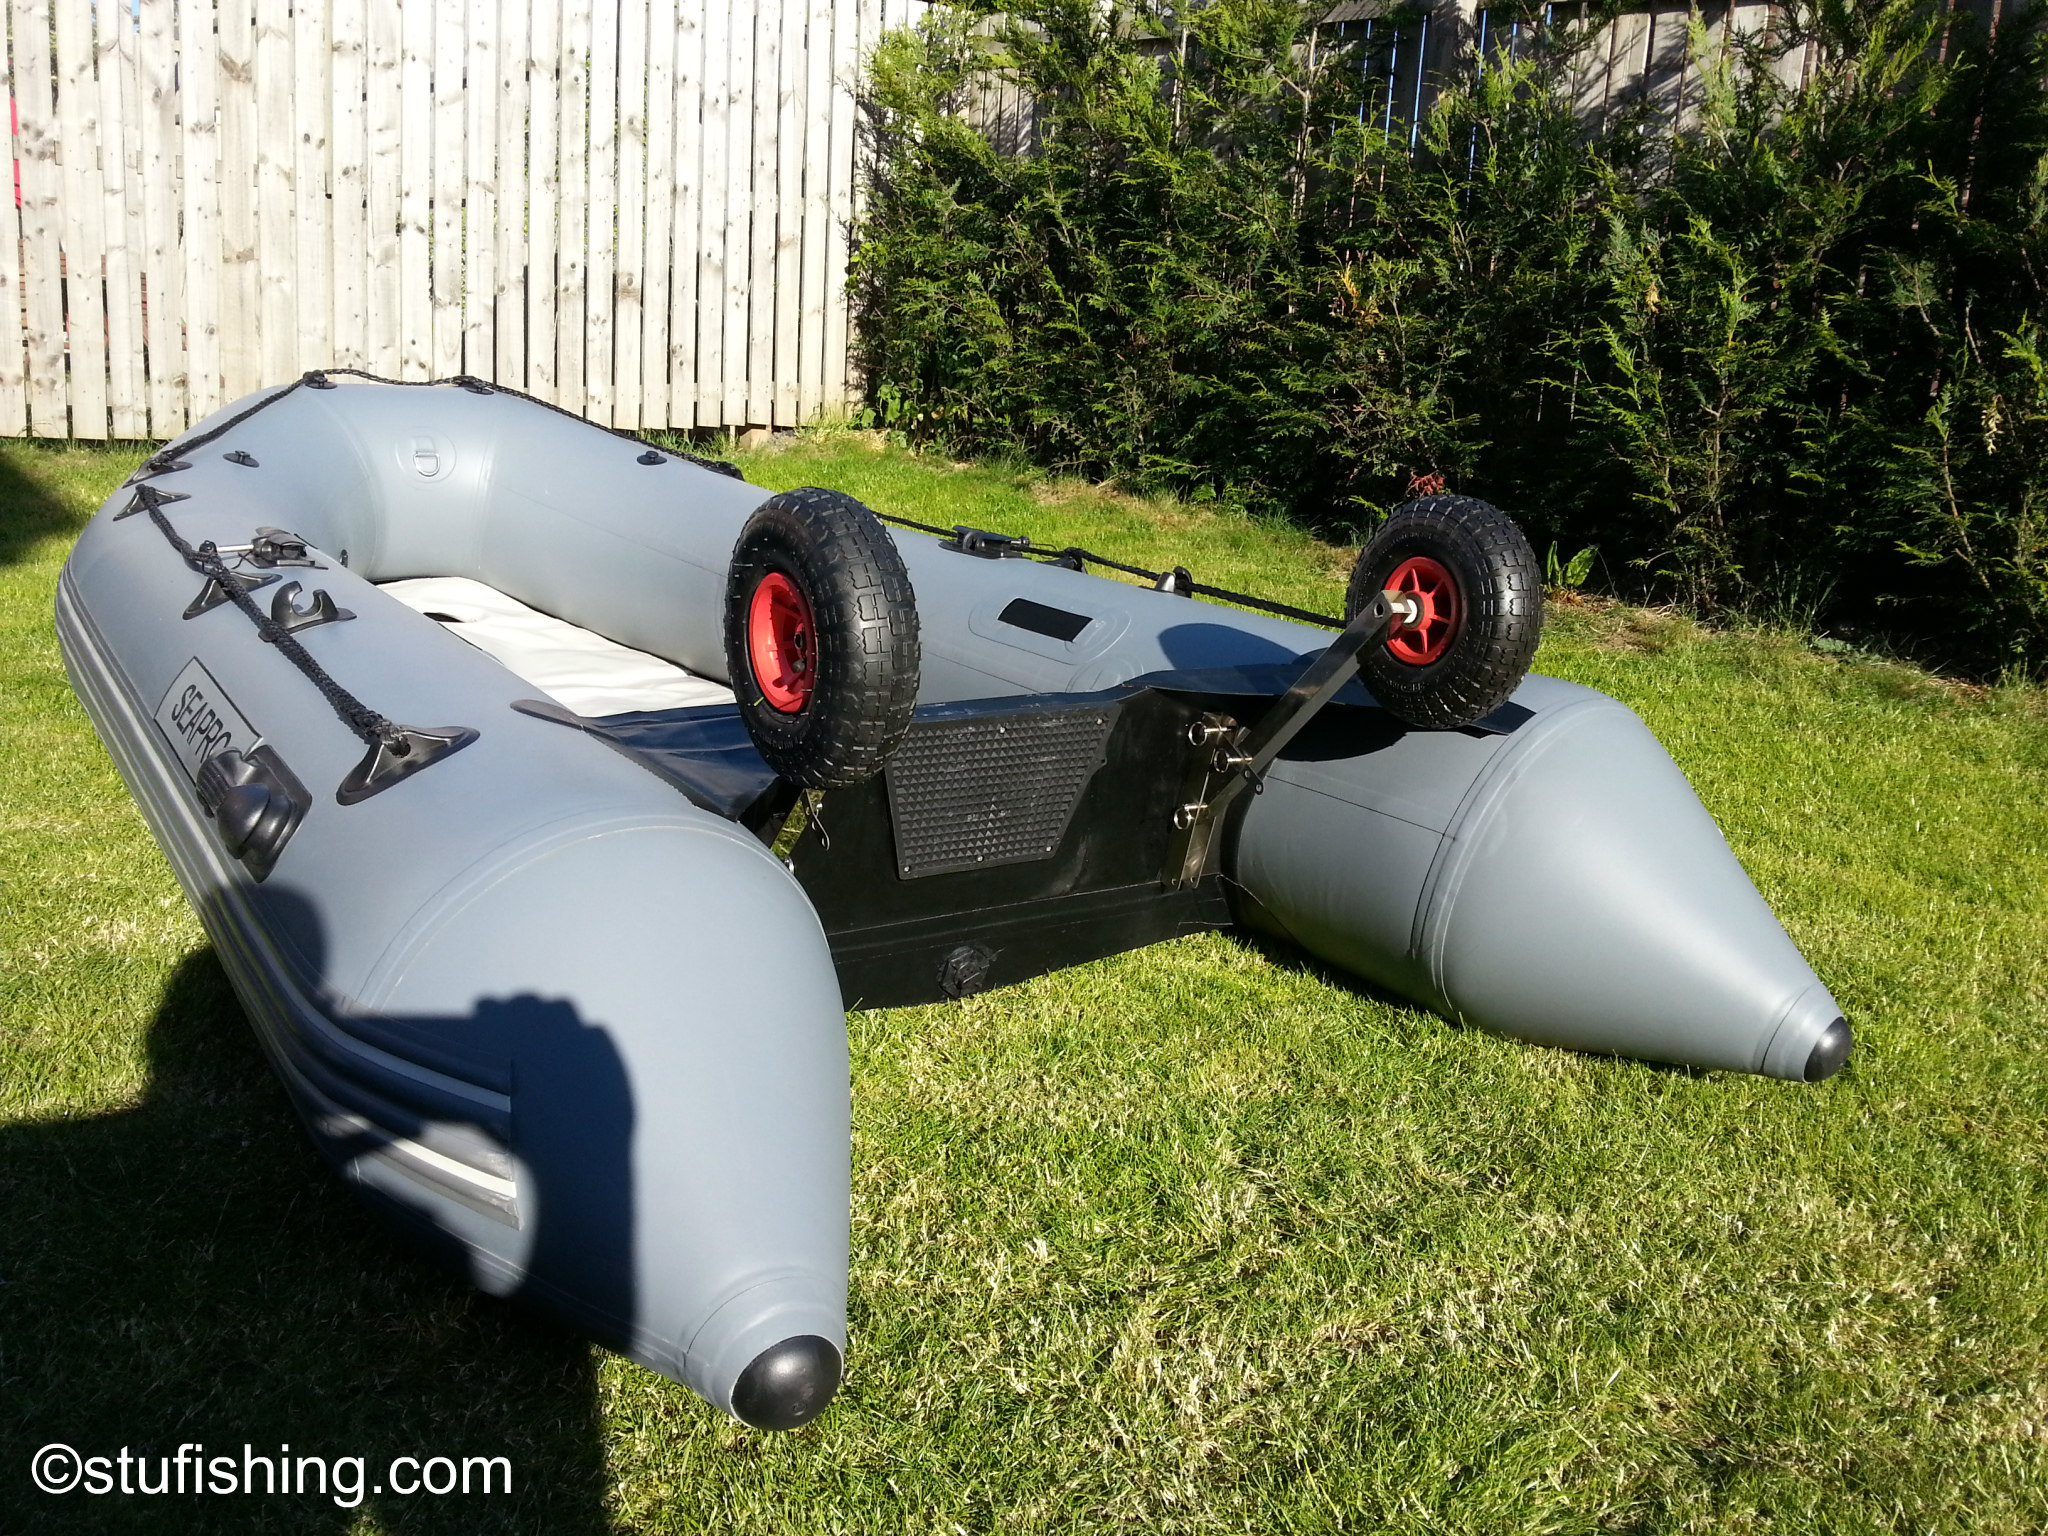 Inflatable Boat Launch Wheels – Which is Better